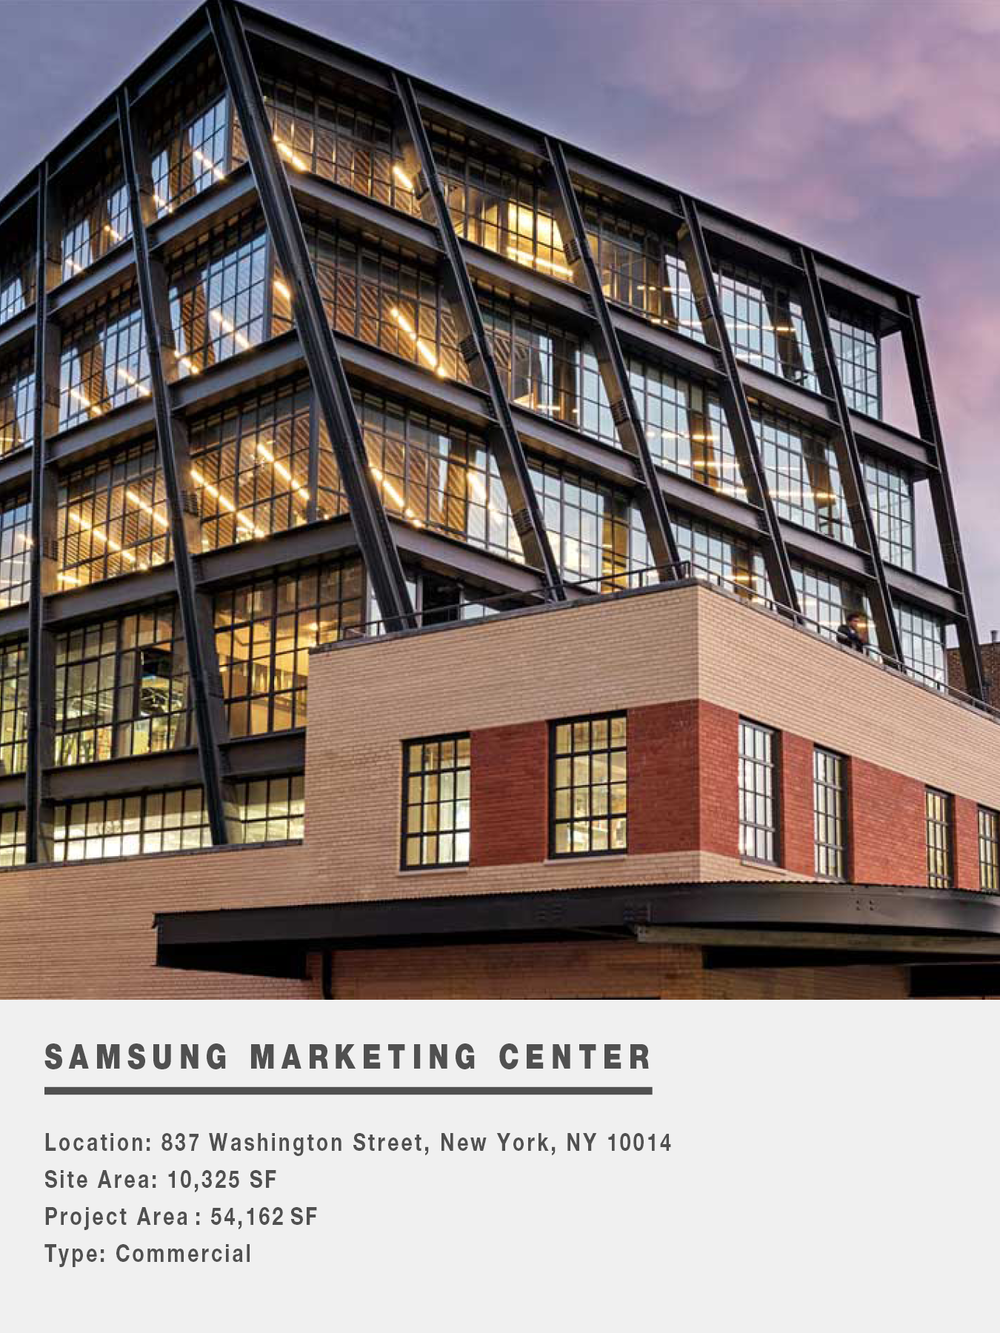 SAMSUNG MARKETING CENTER